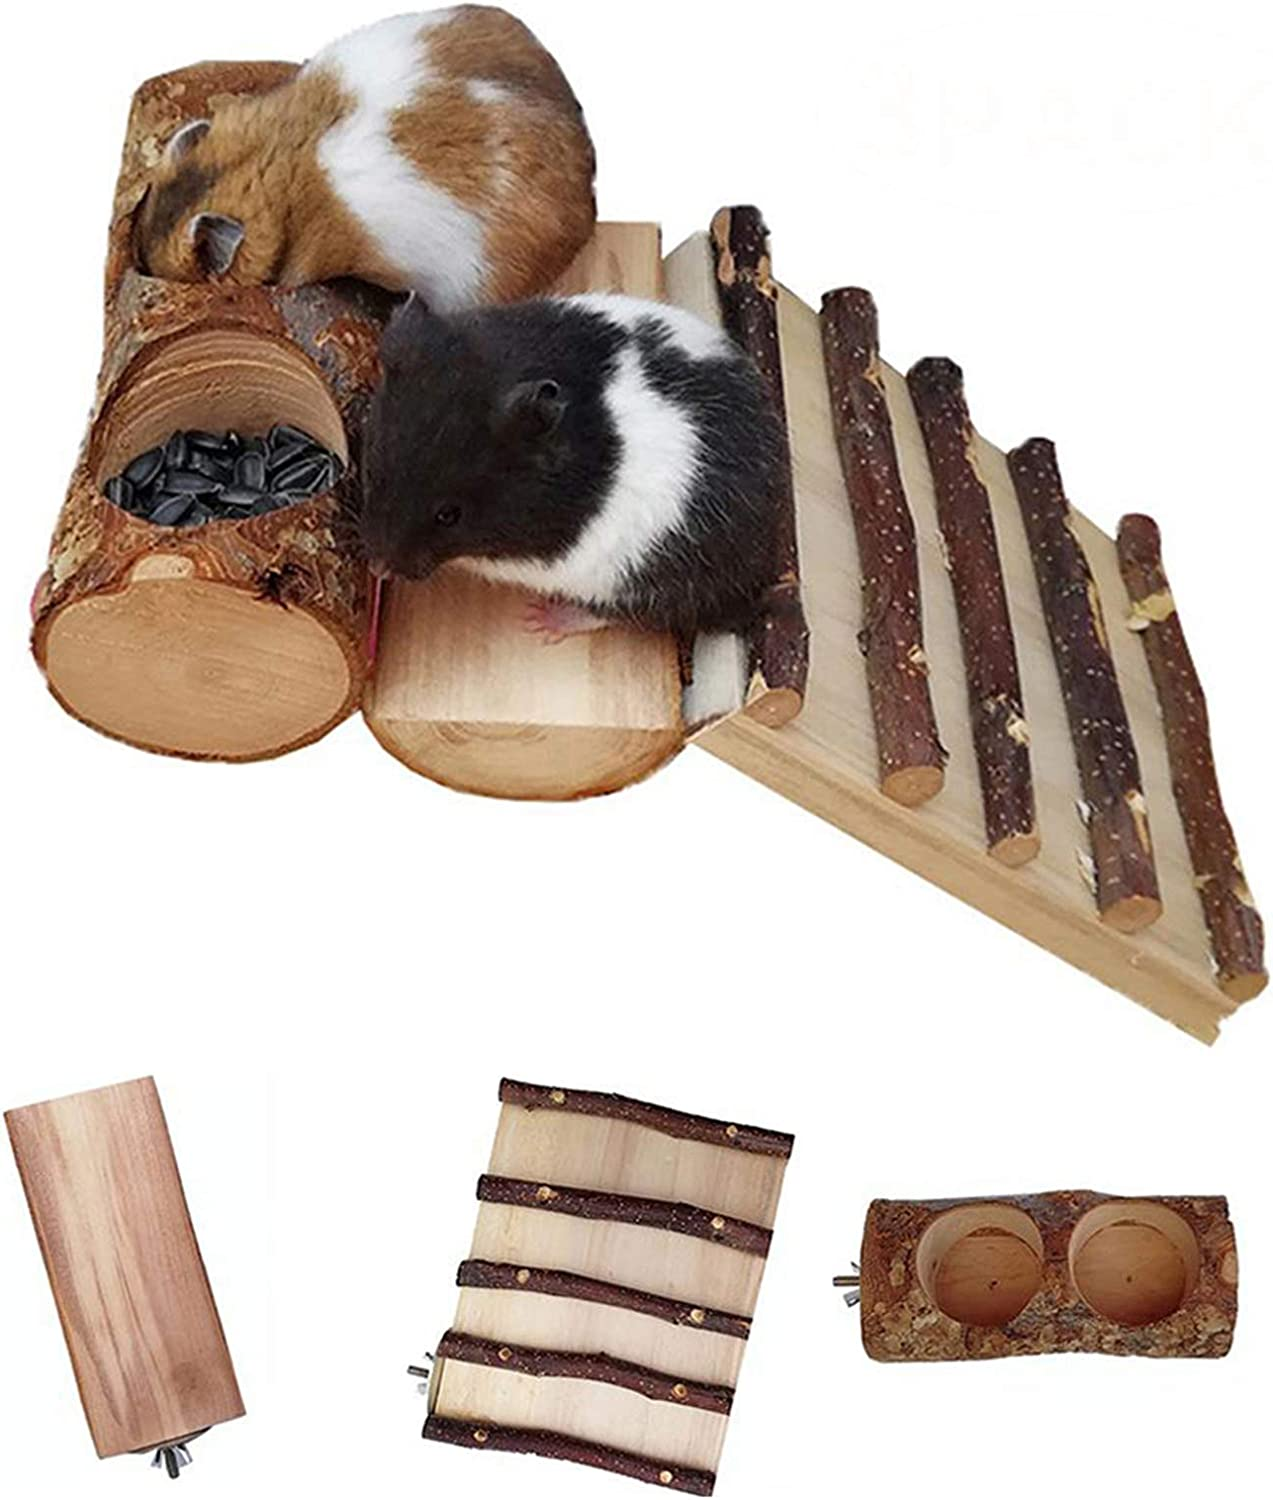 Dwarf Hamster Climbing Ladder Toys, Natural Apple Wood Small Animals Platform with Feeder Bowls, Pet Chew Grinding Teeth Ideal for Chinchilla Rats Mouse(3 Packed)